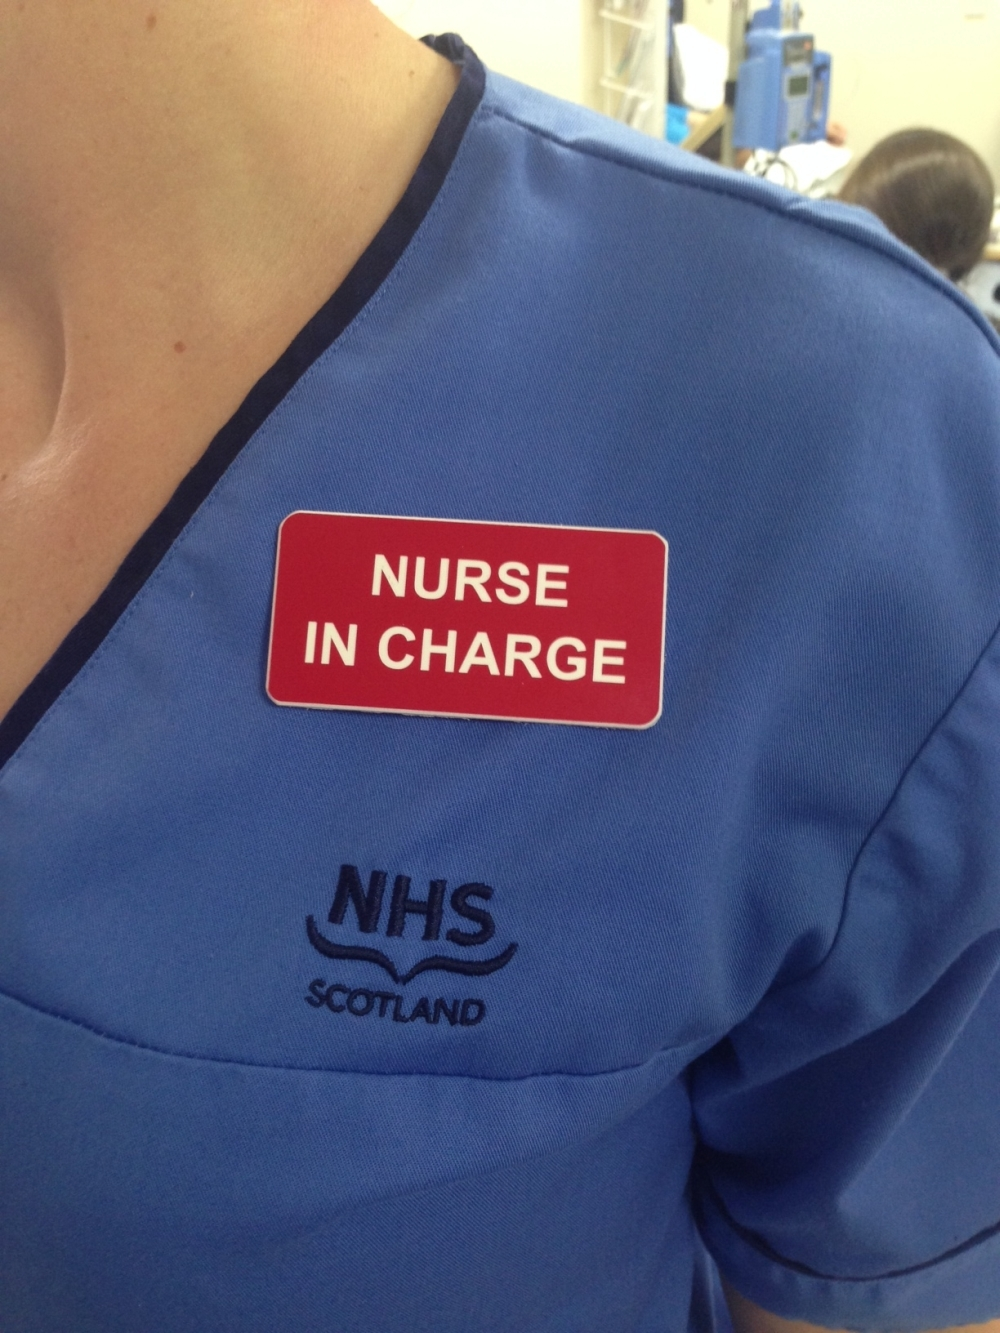 Red badges will clearly identify the nurse in charge